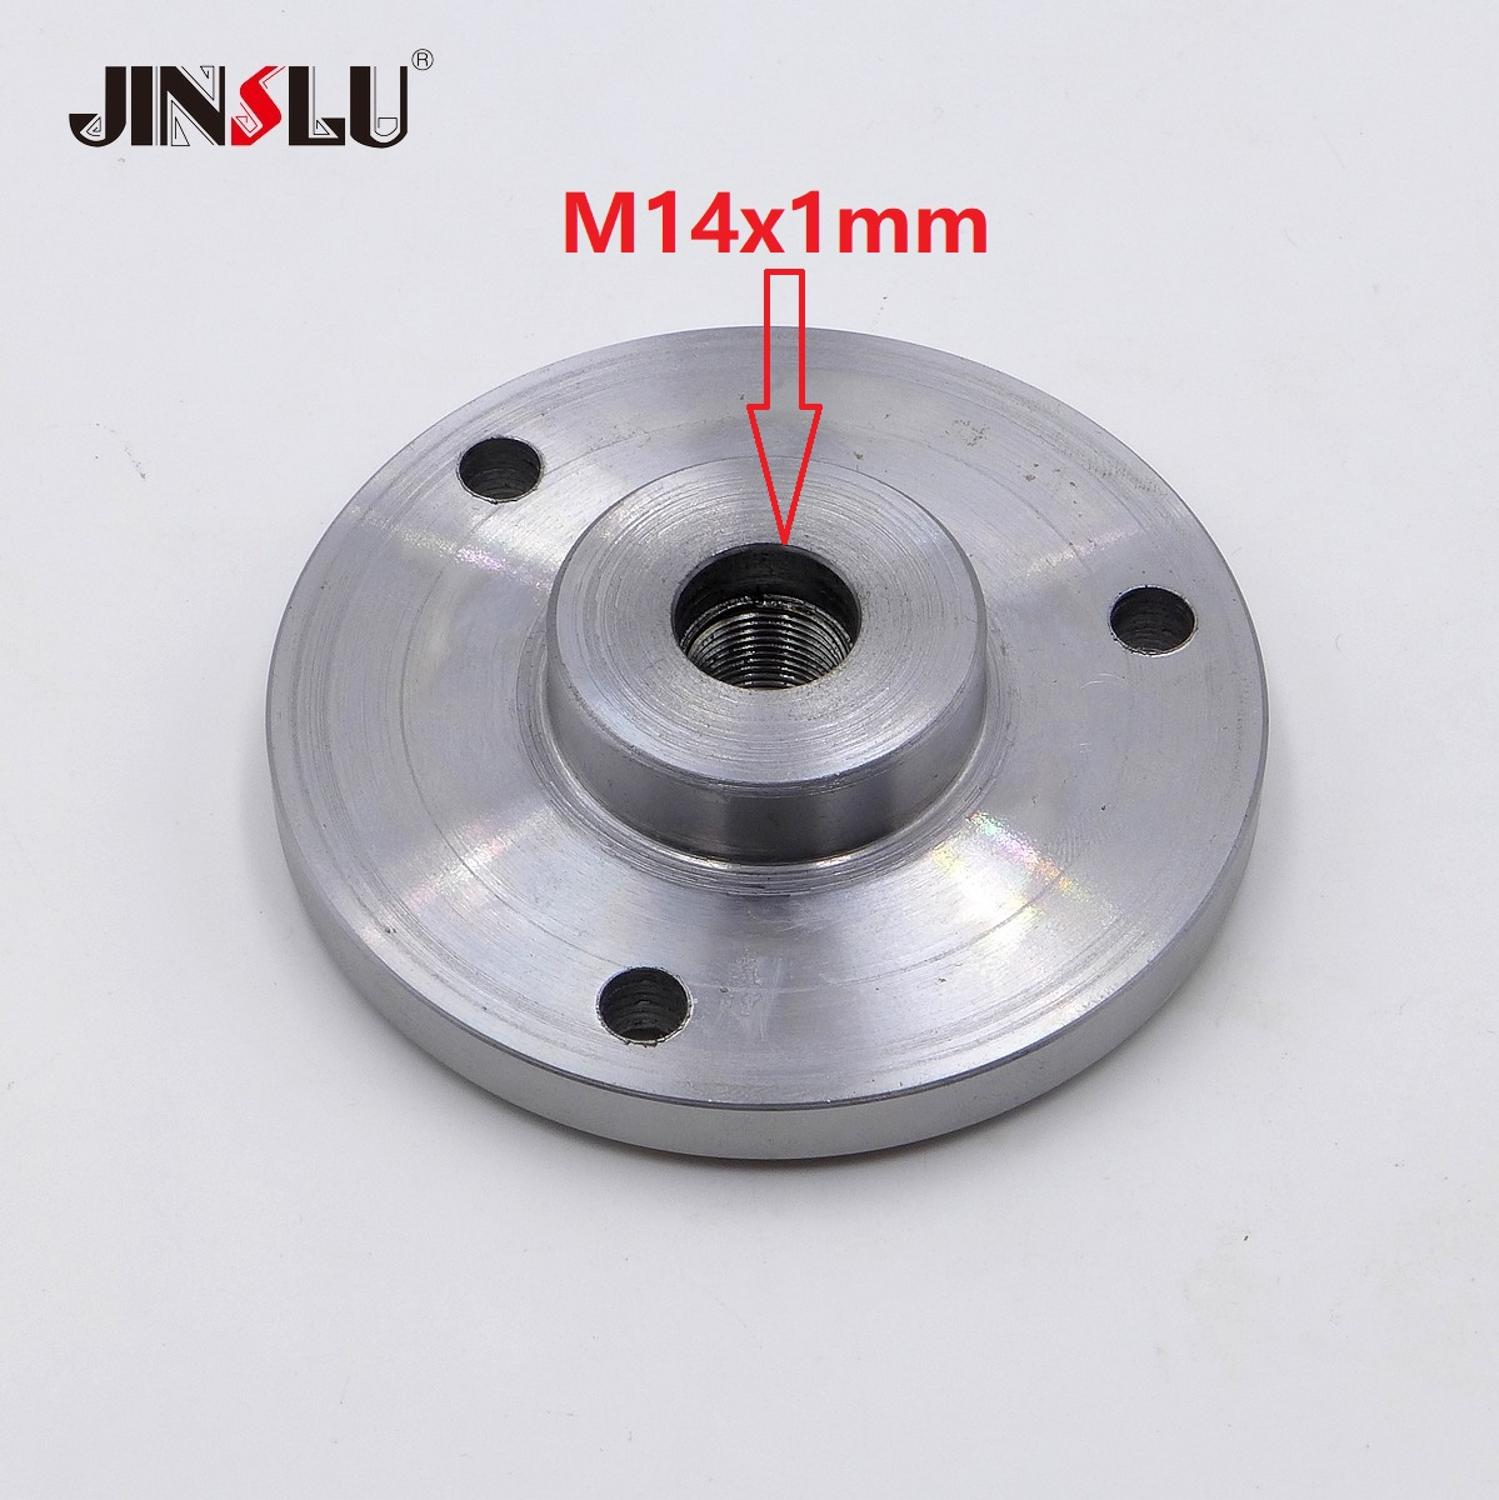 mt3 ms3 taper shank ring flange plate connector adapter for k11 k12 125mm 5 5inch 3jaws 4jaws 125 chuck lathe spindle milling OVER 40 SOLD M14x1mm M14 Spindle Thread chuck Flange Back Plate base Adapter K11-80 K12-80  K11-100 K12-100  K11-125 K12-125